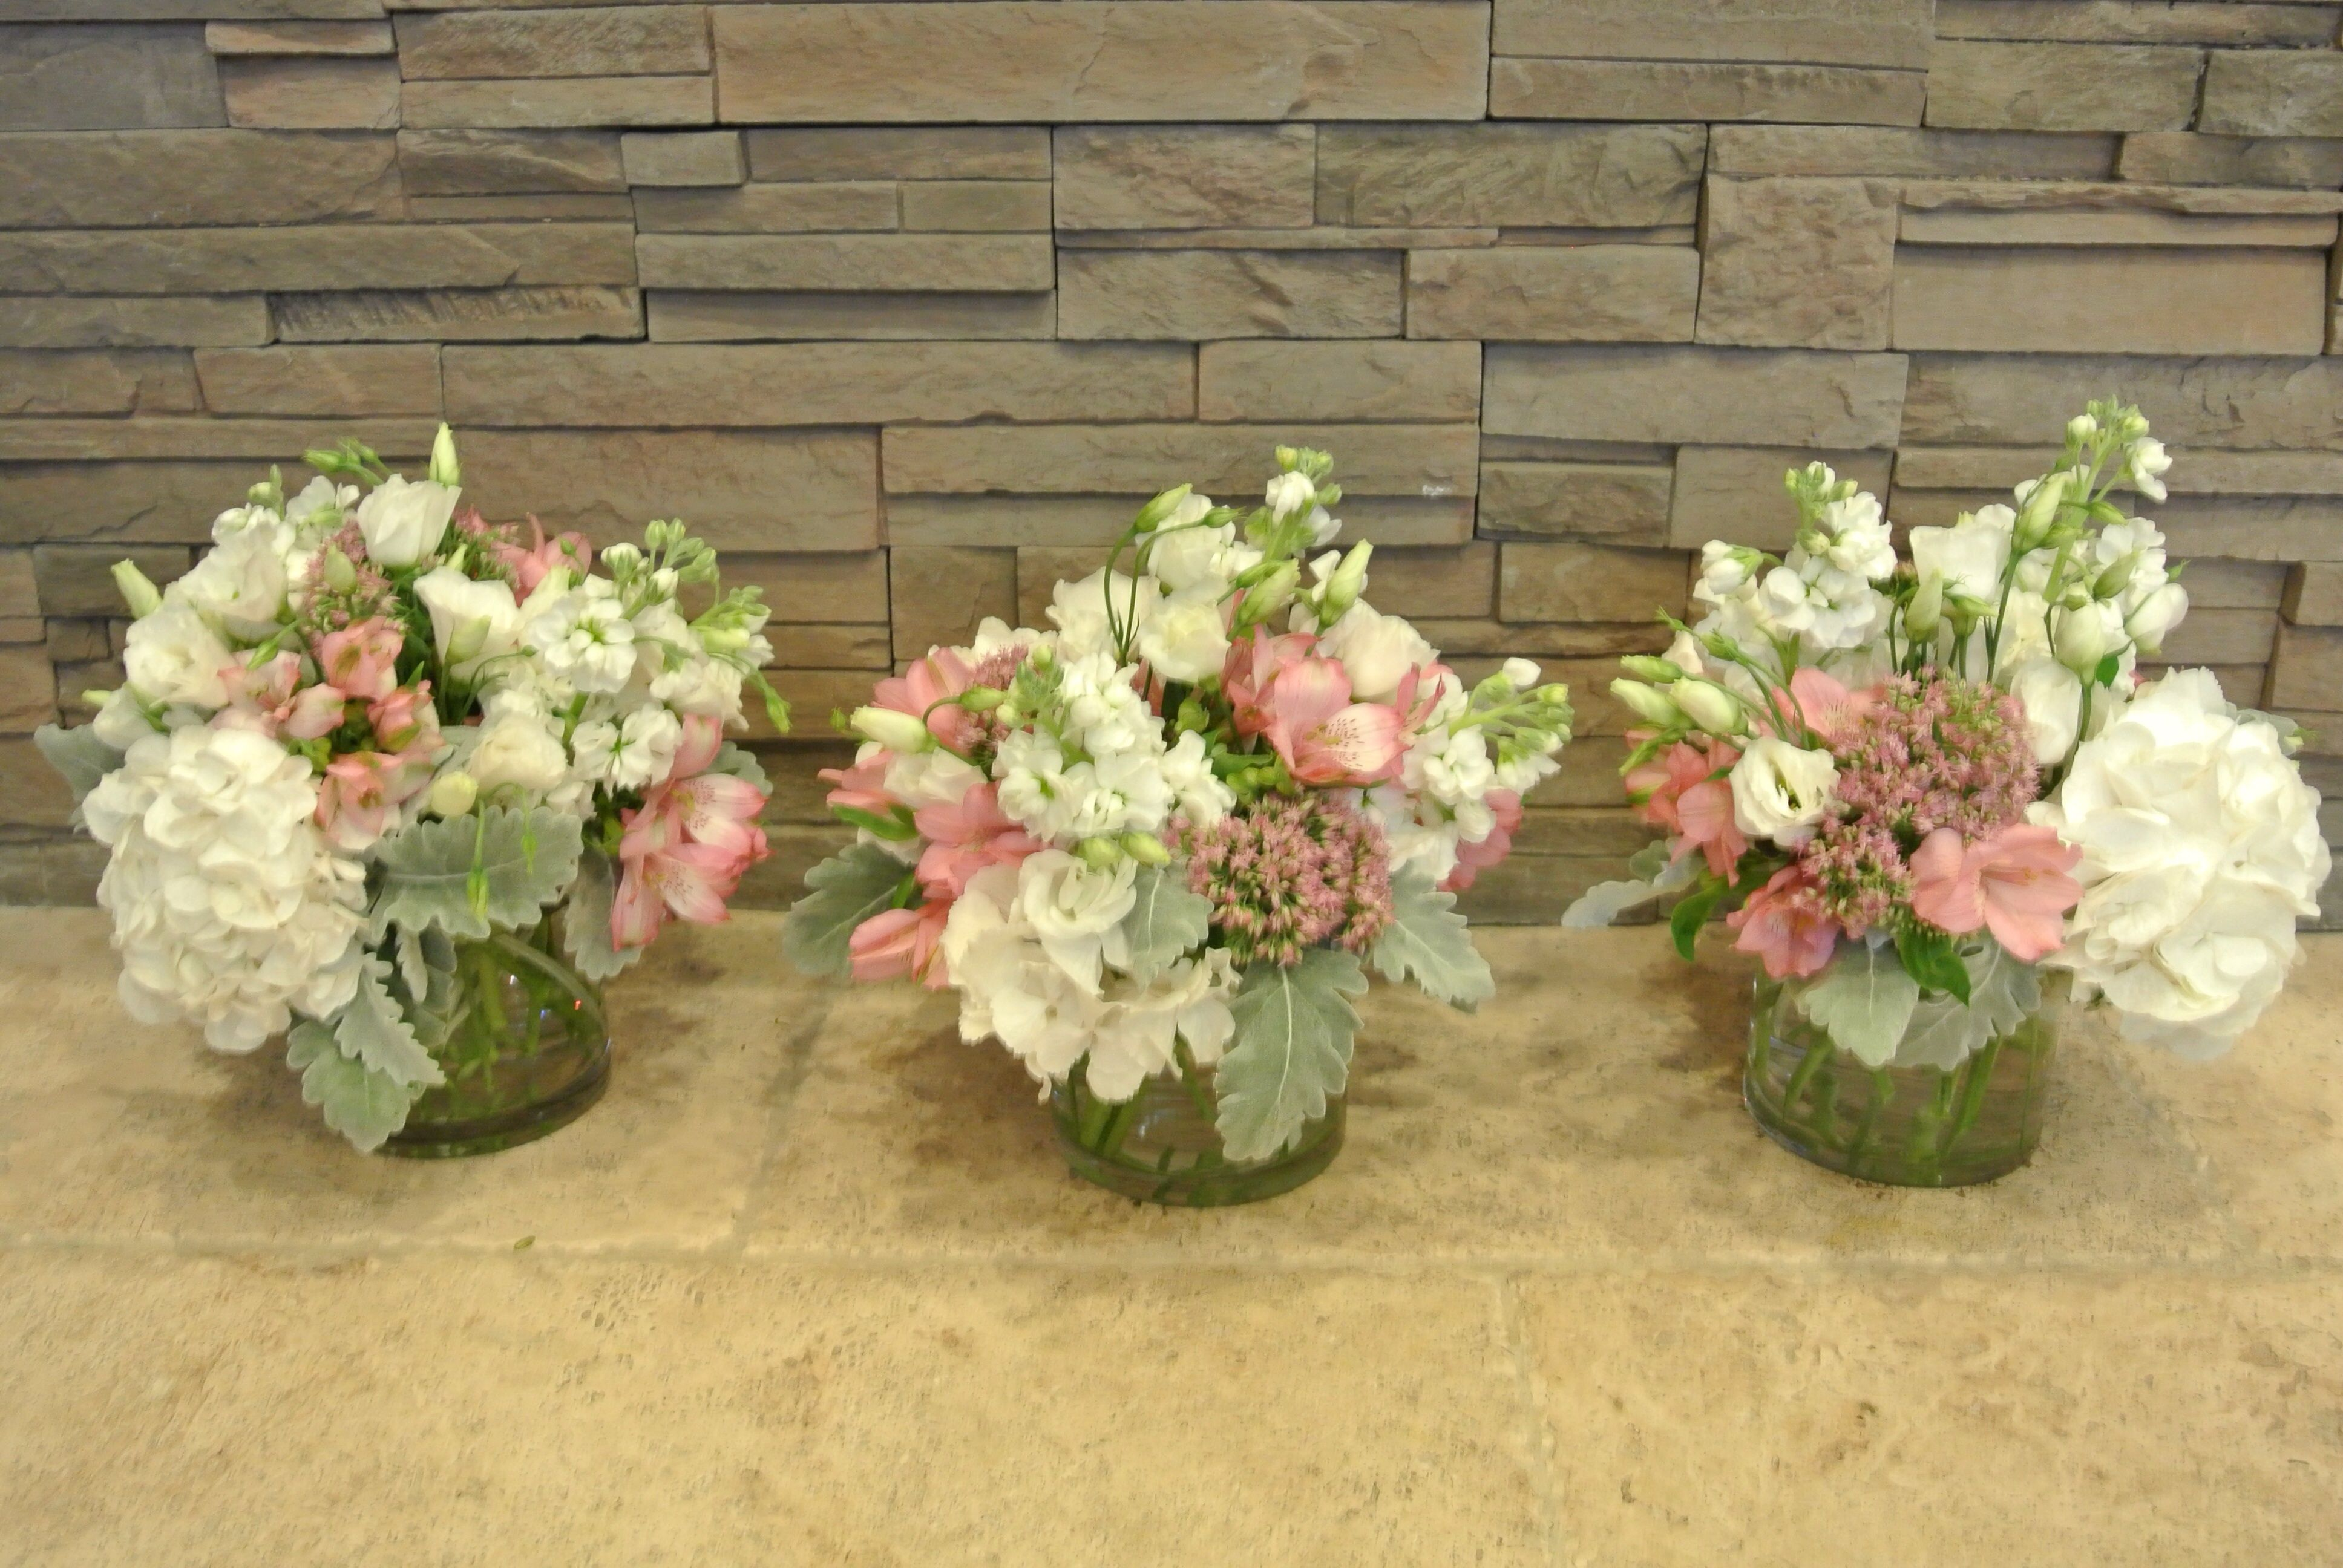 Pink and white hydrangea stock sedum lisianthus dusty miller pink and white hydrangea stock sedum lisianthus dusty miller altavistaventures Image collections